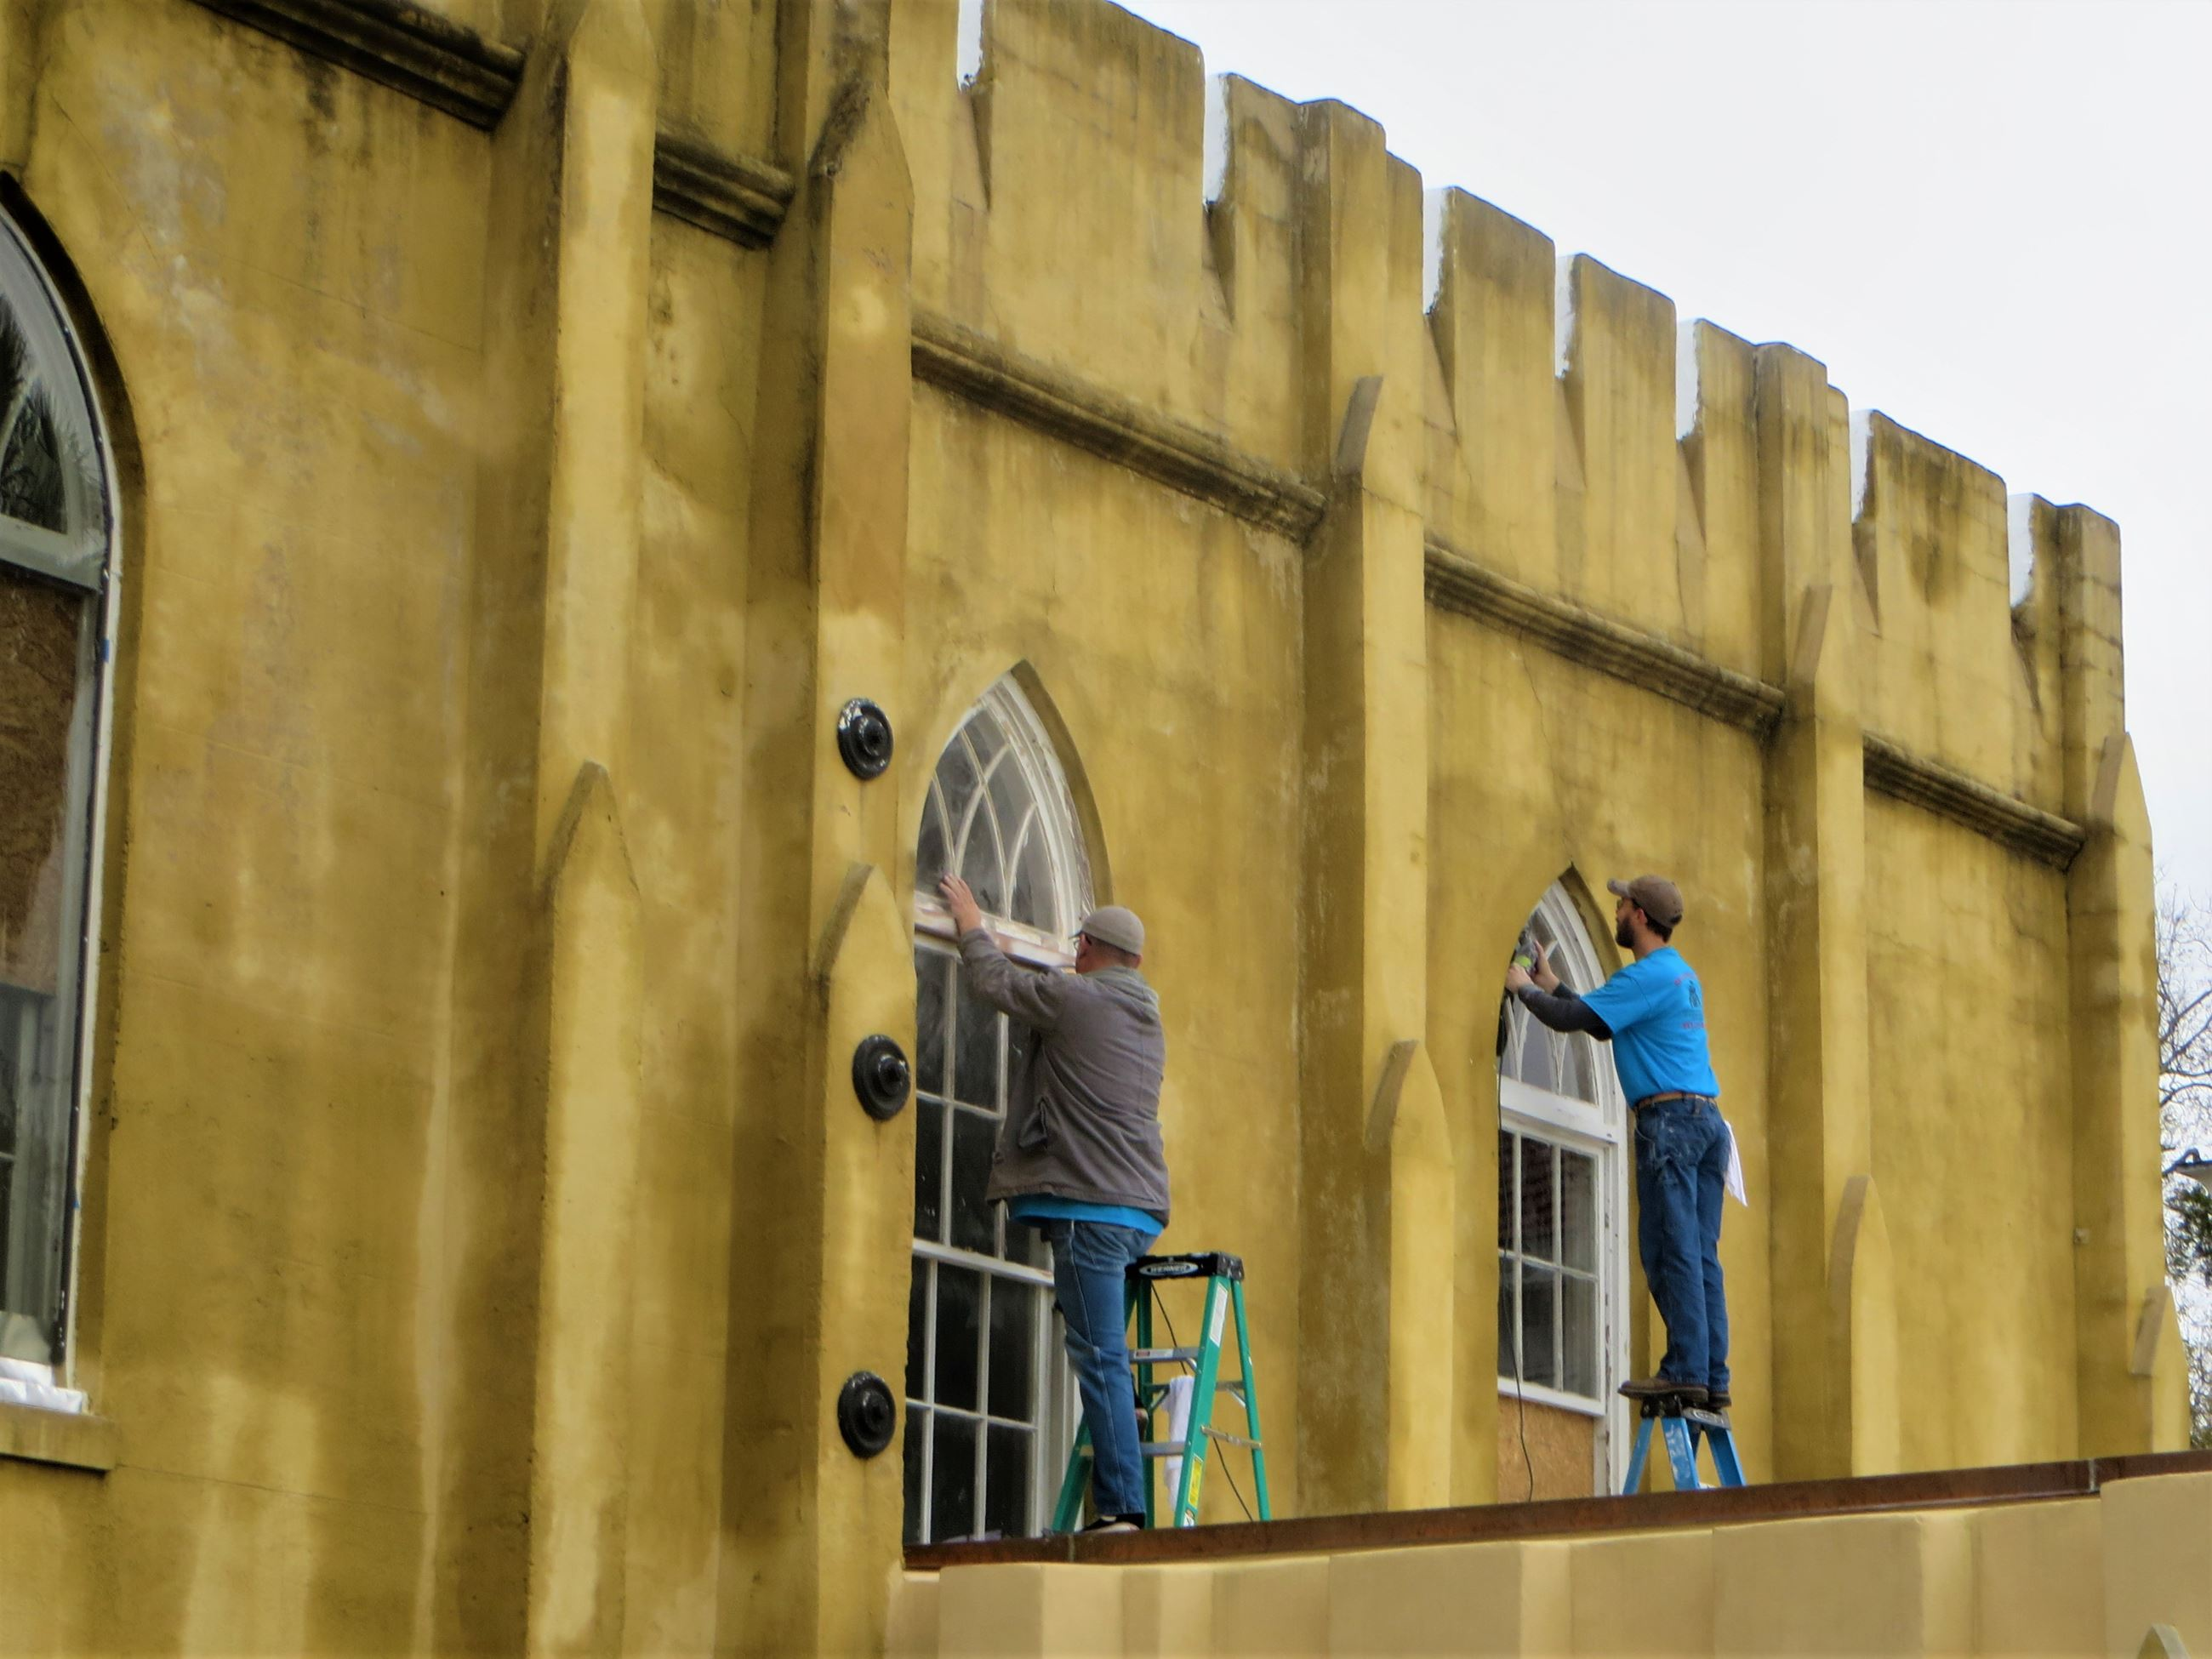 Workers restore windows at Arsenal in December 2019.